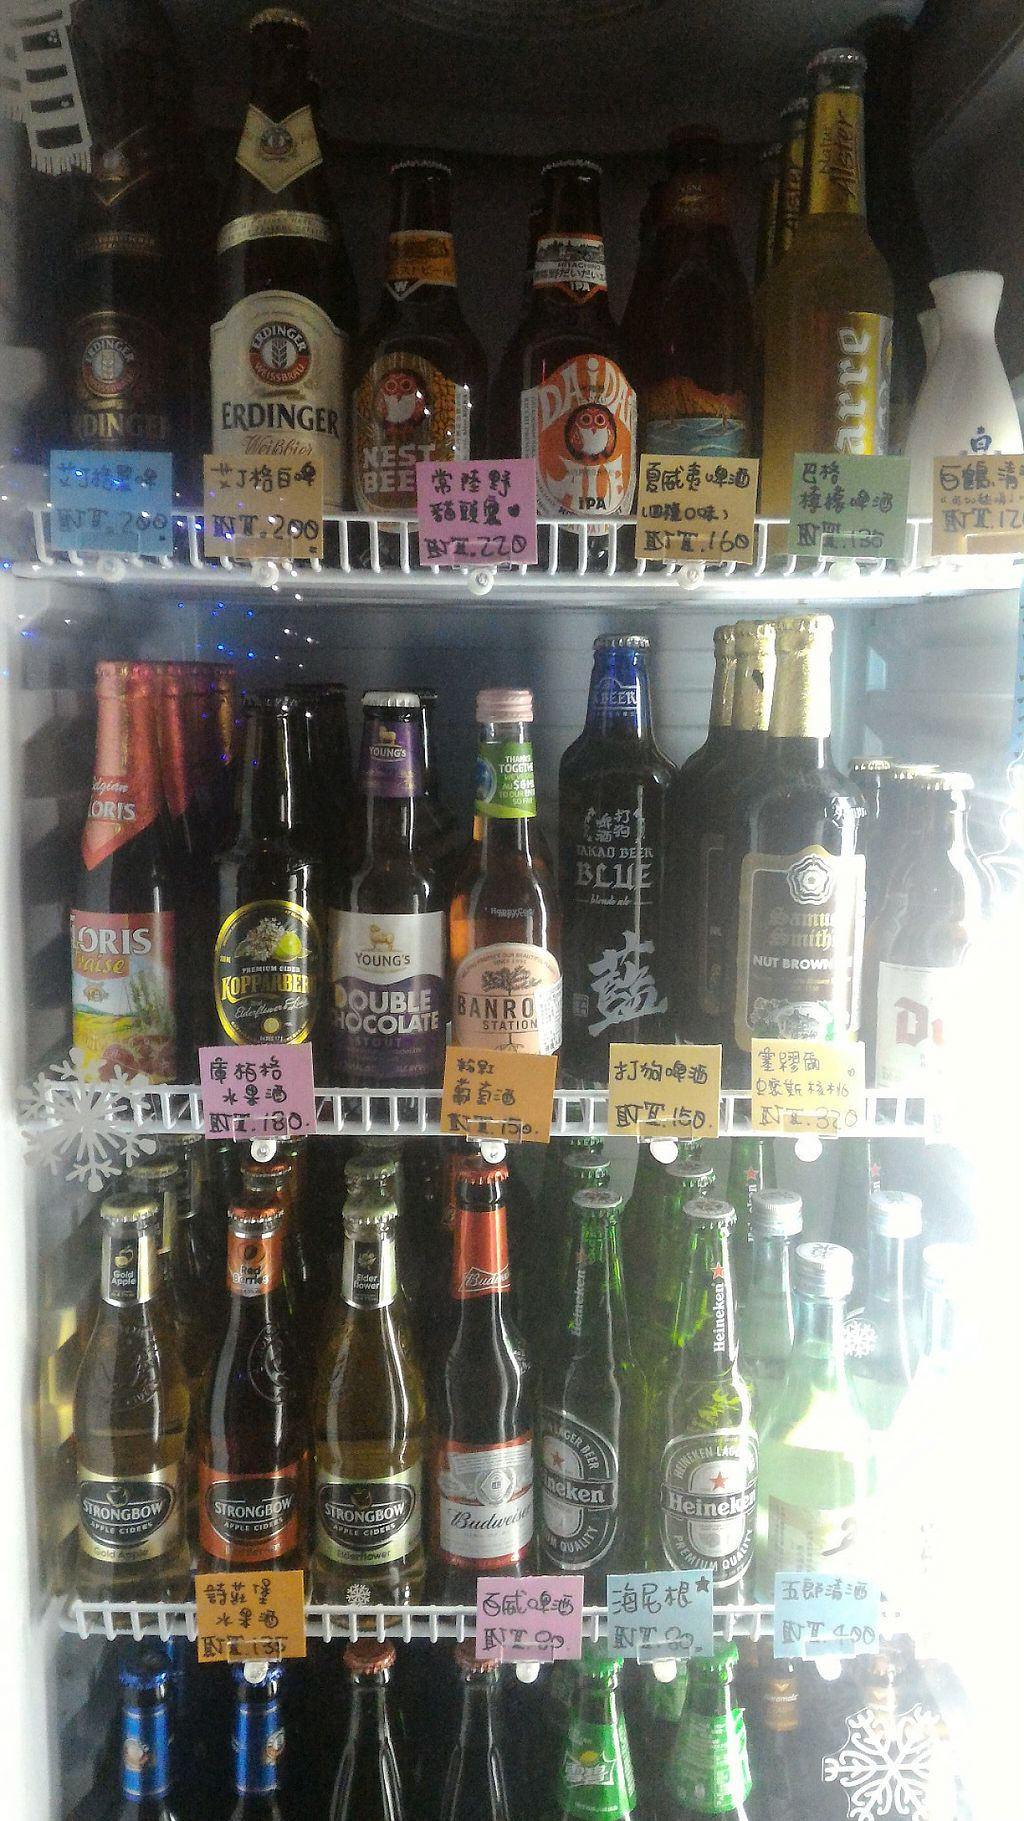 """Photo of Jing Chuan Vegetarian Beer Bar  by <a href=""""/members/profile/Terryclark"""">Terryclark</a> <br/>Great beer selection <br/> December 31, 2016  - <a href='/contact/abuse/image/84469/206541'>Report</a>"""